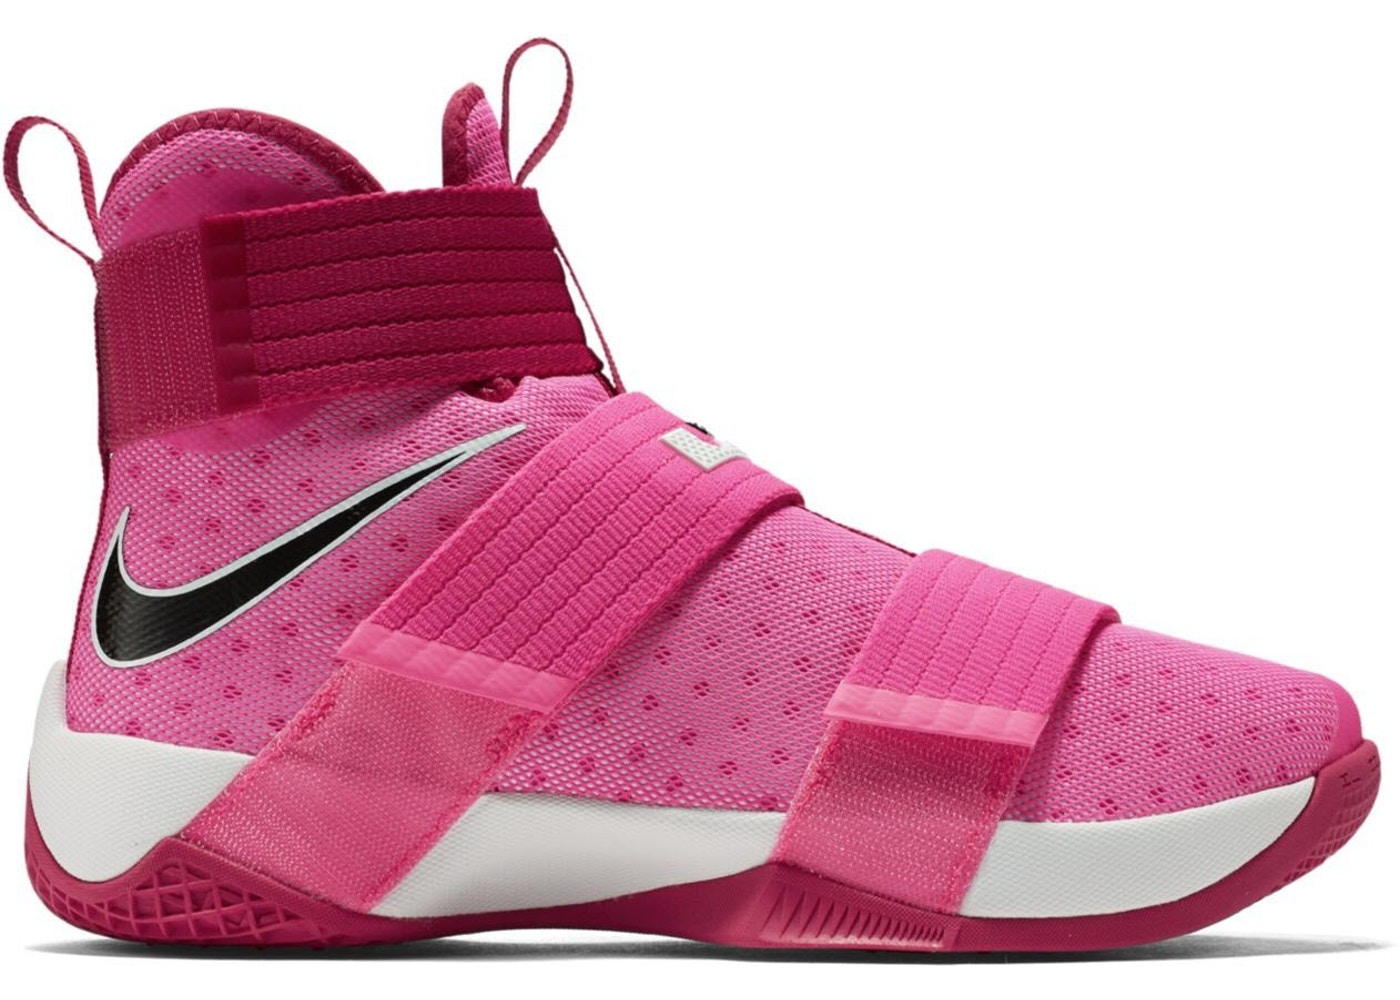 a8f786ad7cb LeBron Zoom Soldier 10 Think Pink - 844375-606